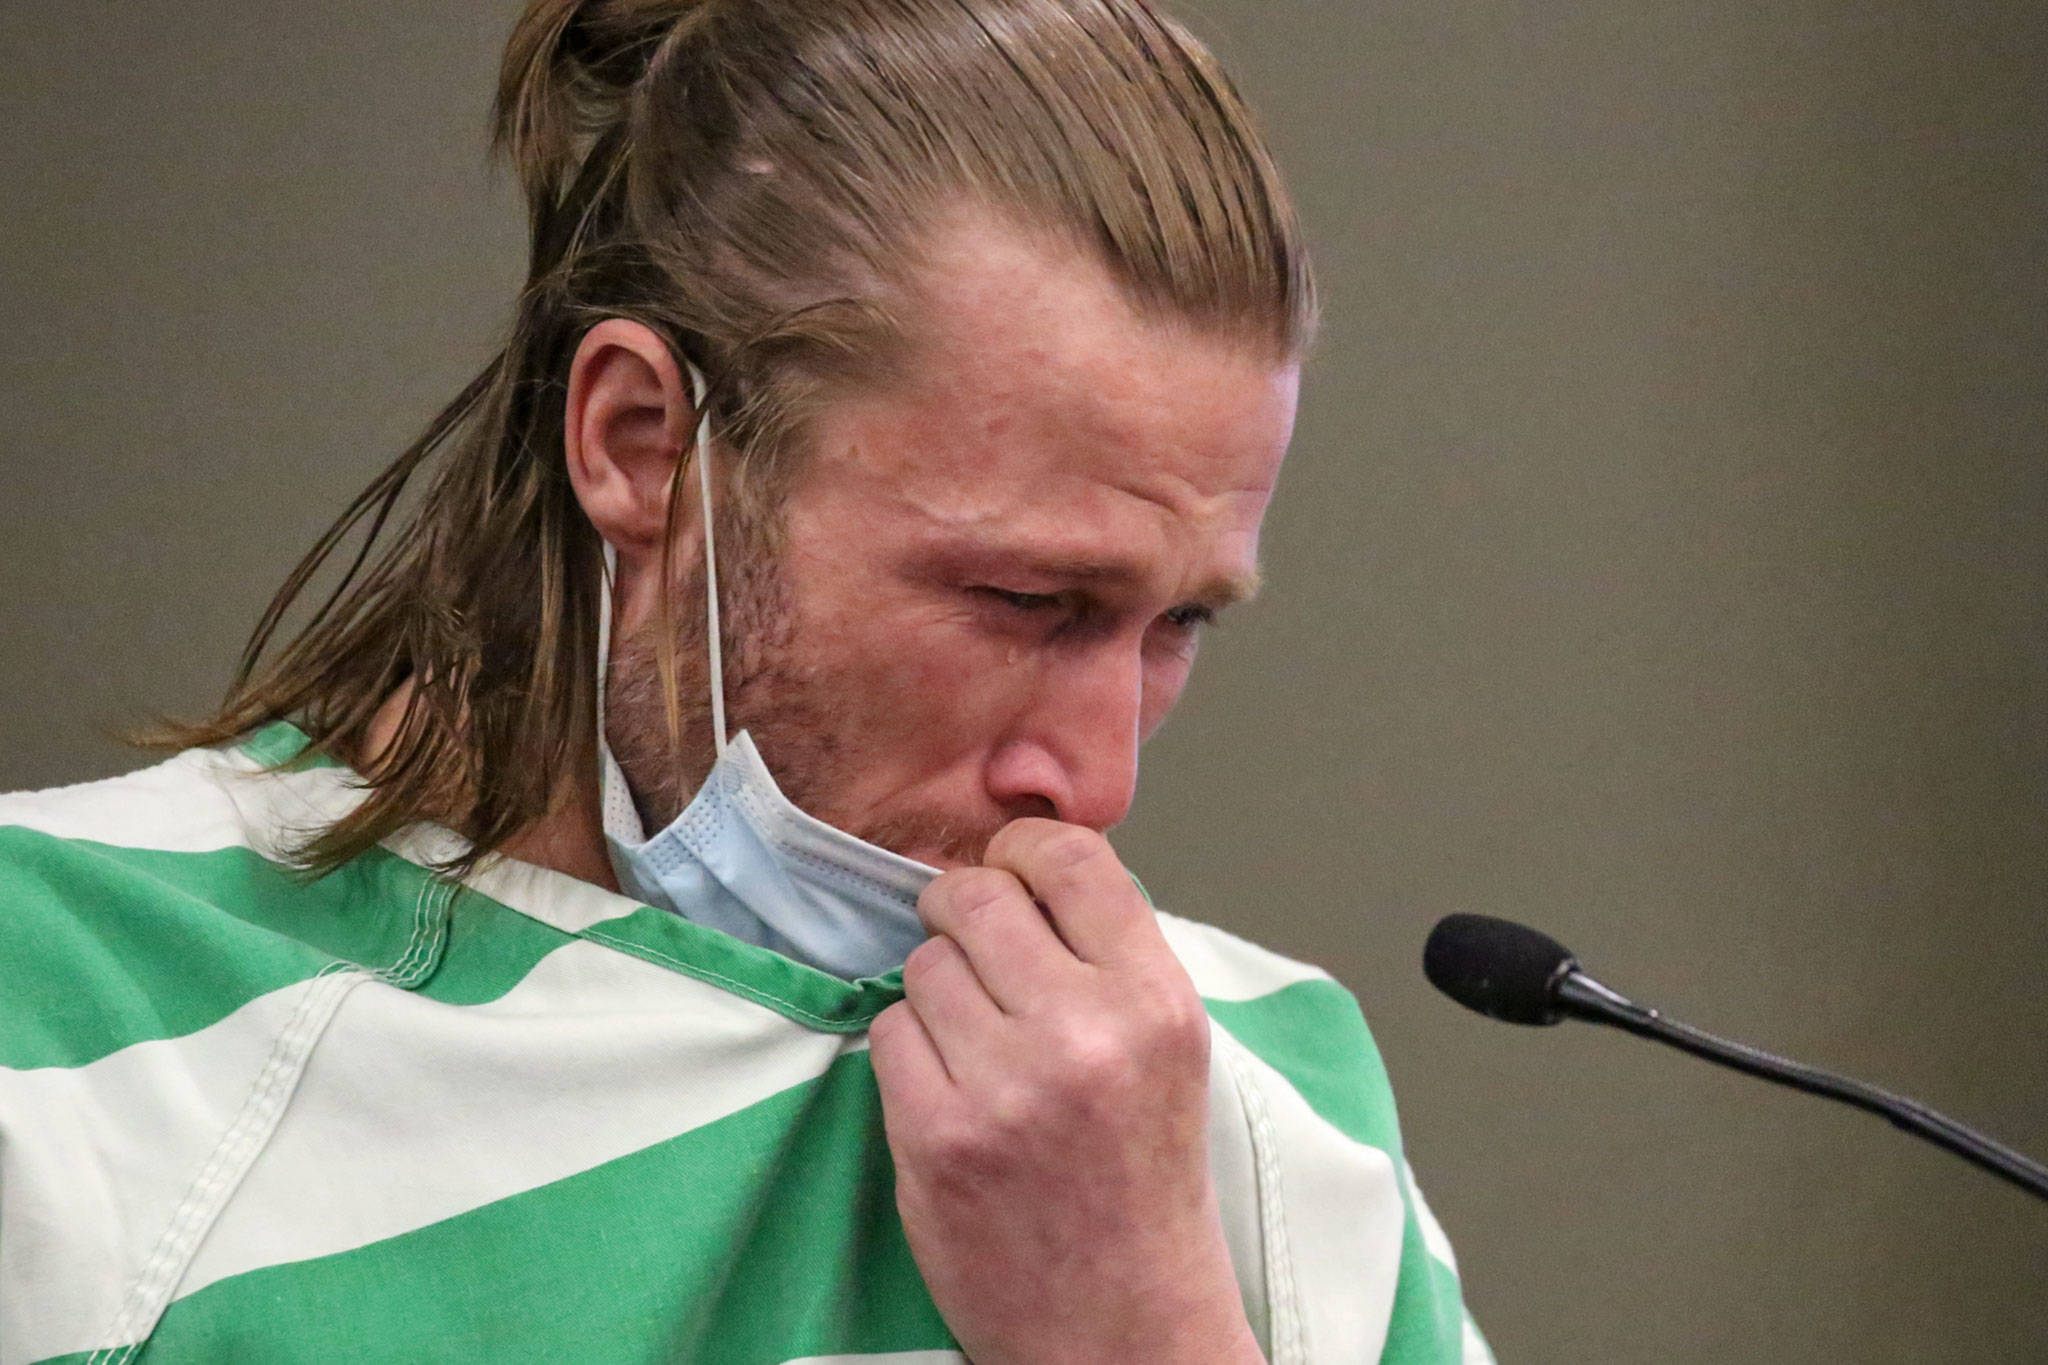 Elmer Nash is sentenced to 10 years Thursday in Snohomish County Superior Court for the 1987 arson at Everett Community College that killed firefighter Gary Parks. (Kevin Clark / The Herald)